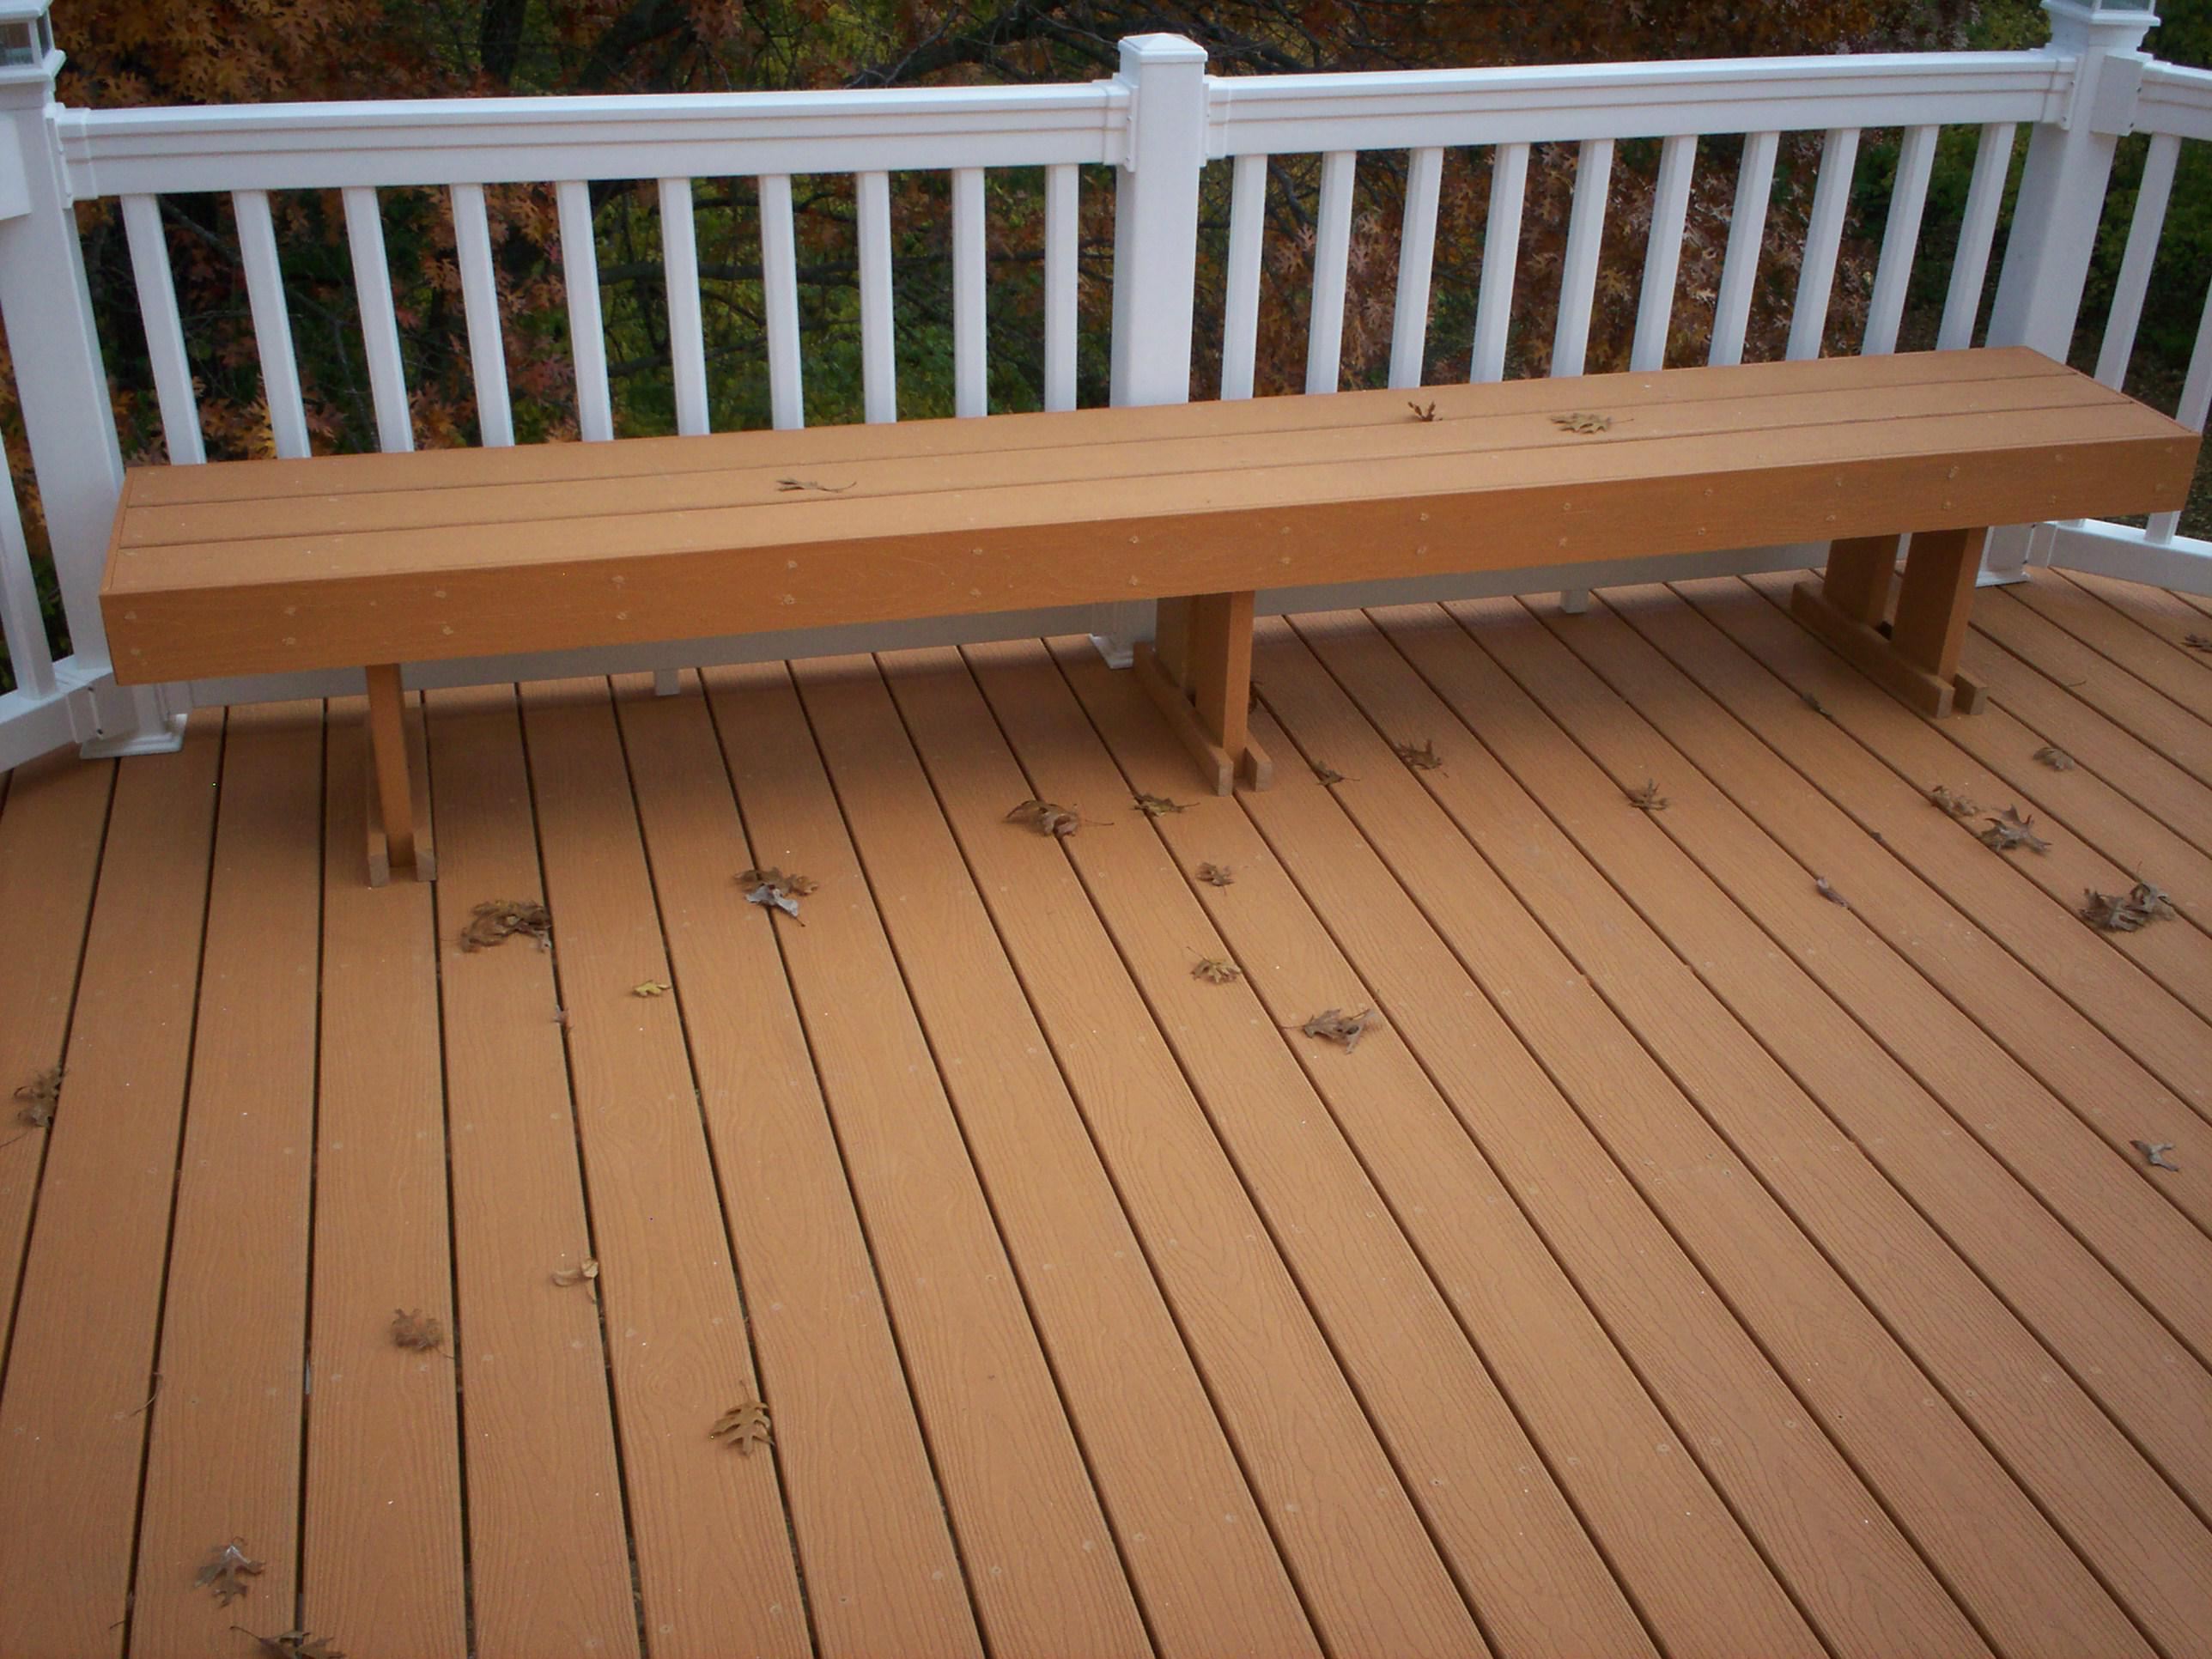 Moisture Shield Composite Decking | Correctdeck Cx | Choicedek Reviews